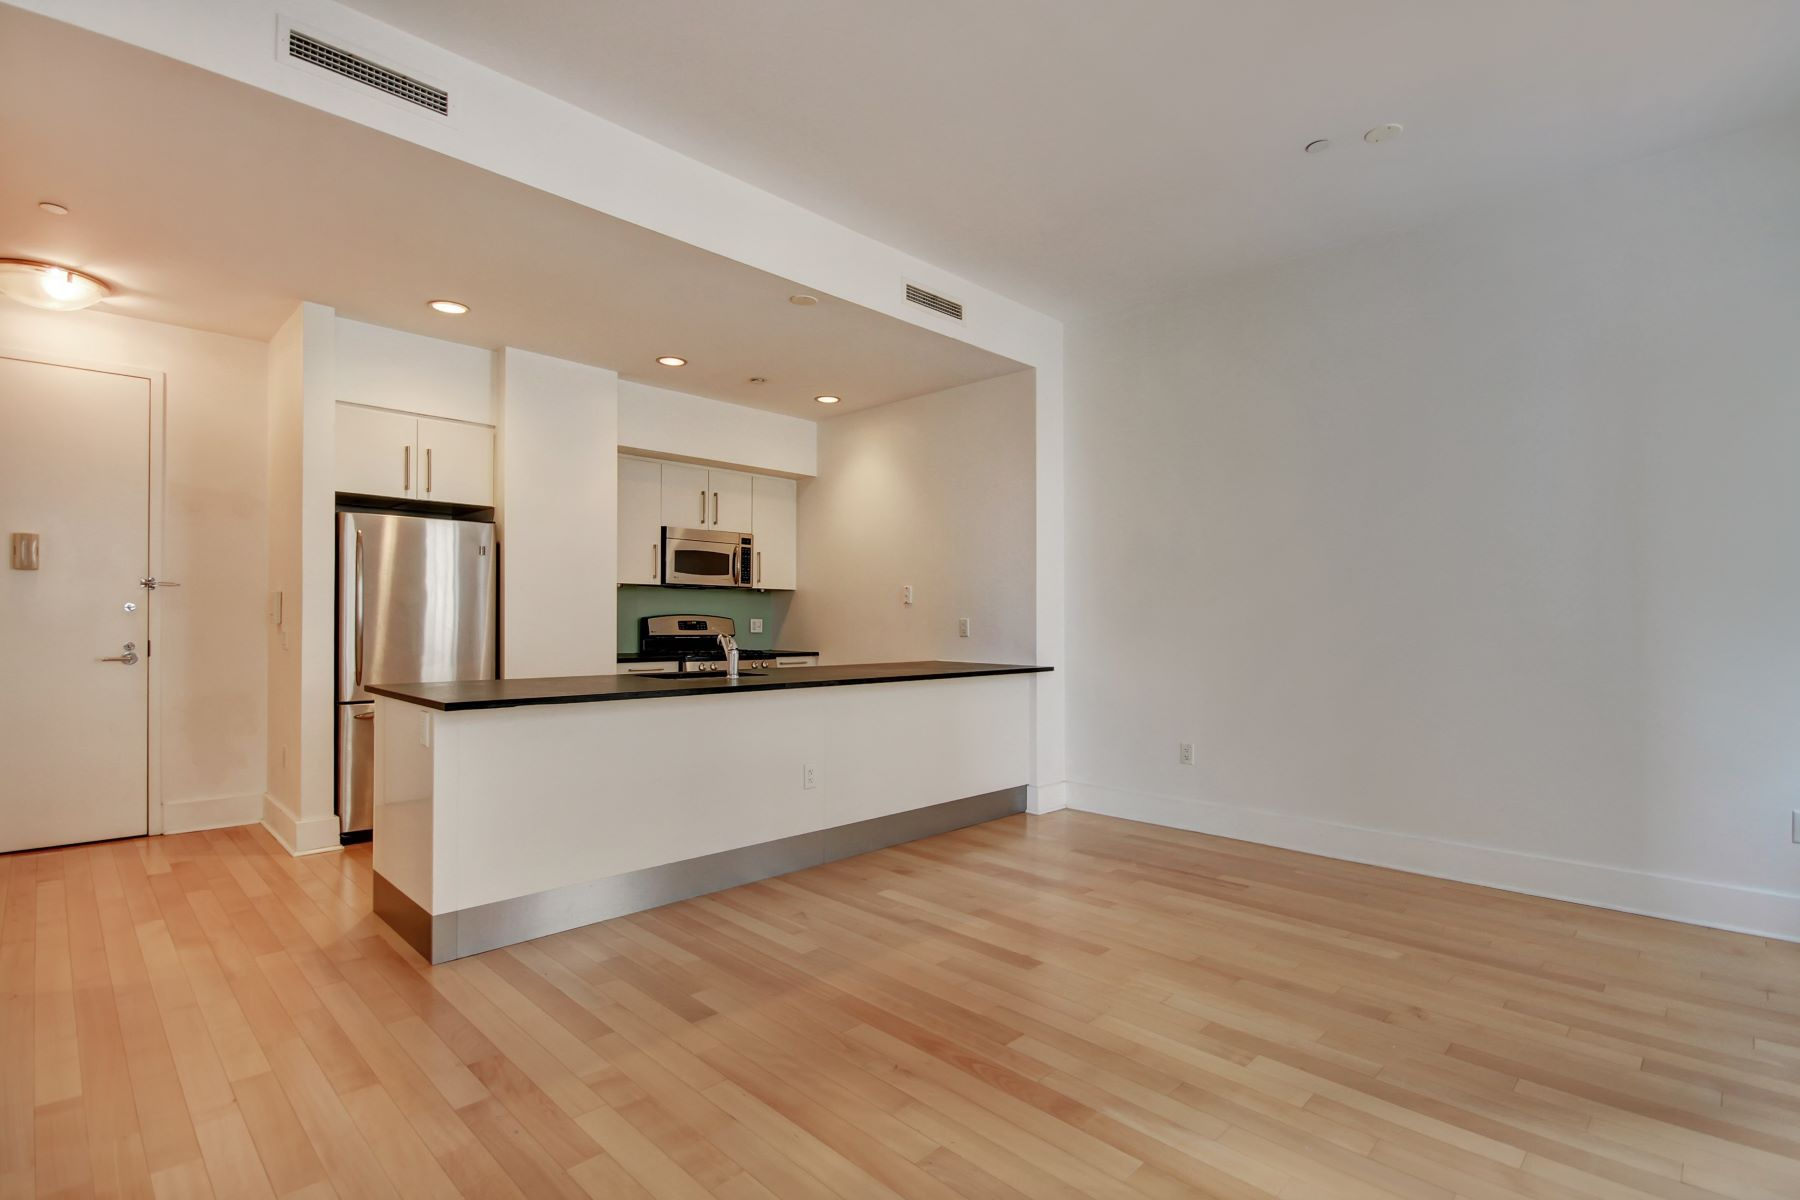 Condominium for Rent at THE BEACON 1BR + PATH Shuttle 4 Beacon Way #604 Jersey City, New Jersey 07304 United States